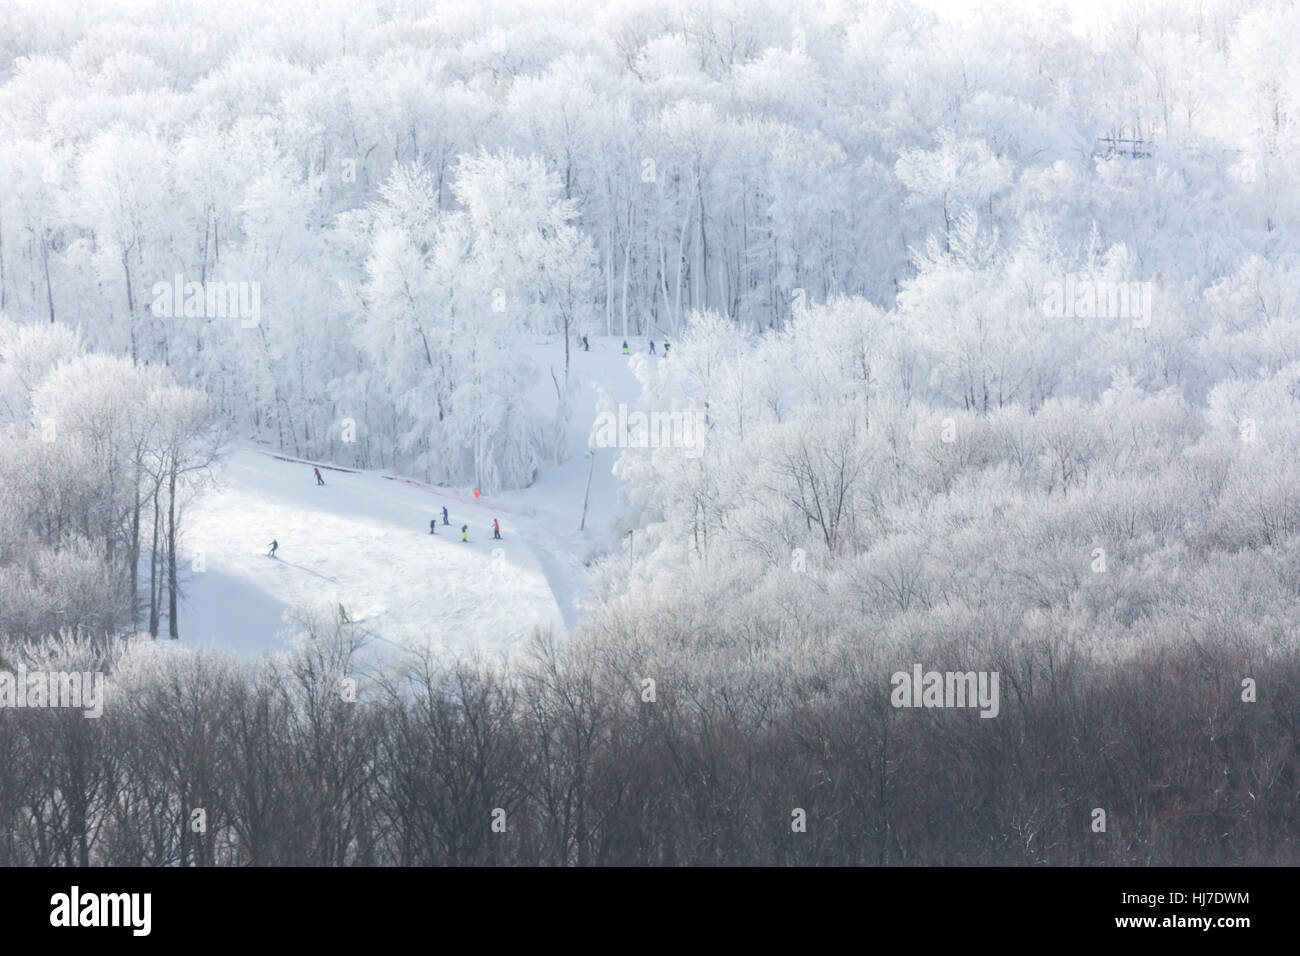 People downhill skiing surrounded by a frost covered woods in January. - Stock Image